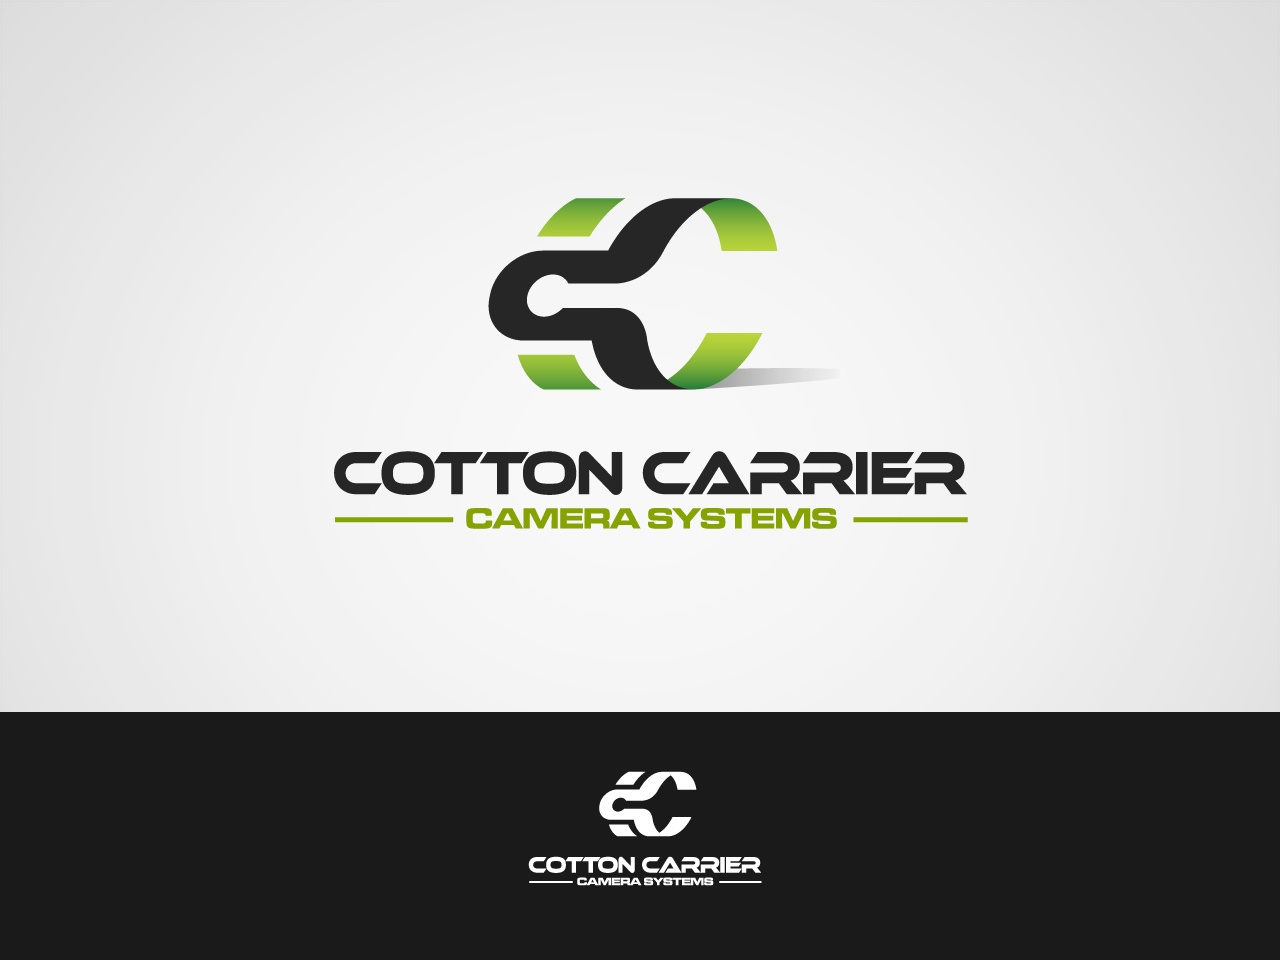 Logo Design by jpbituin - Entry No. 34 in the Logo Design Contest Cotton Carrier Camera Systems Logo Design.